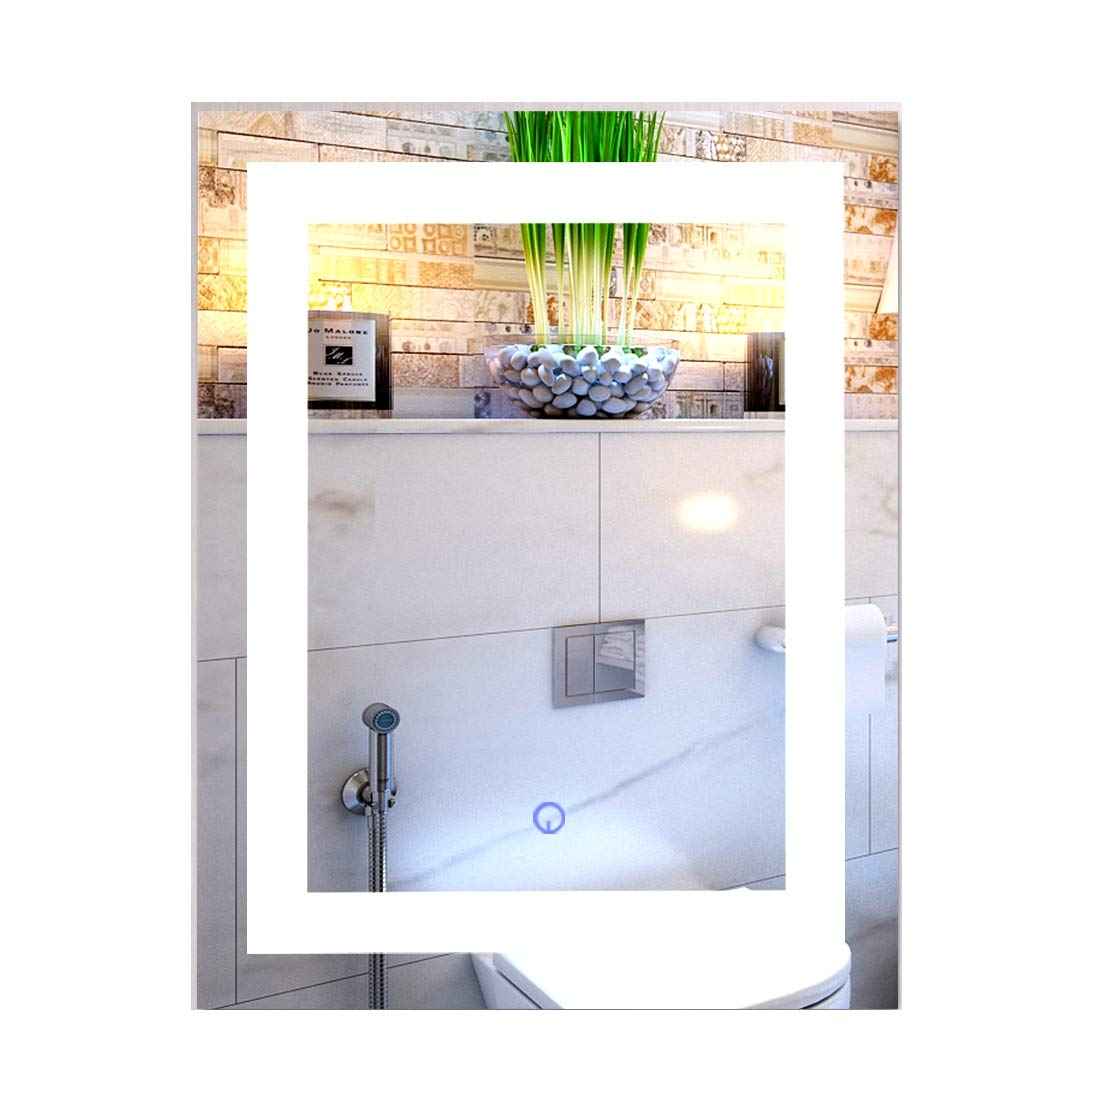 "CO-Z Modern LED Bathroom Mirror, Dimmable Rectangle Lighted Wall Mirror with Lights and Dimmer, Wall Mounted Contemporary Light Up Makeup Vanity Cosmetic Bathroom Mirror Over Sink (24"" x 30"")"